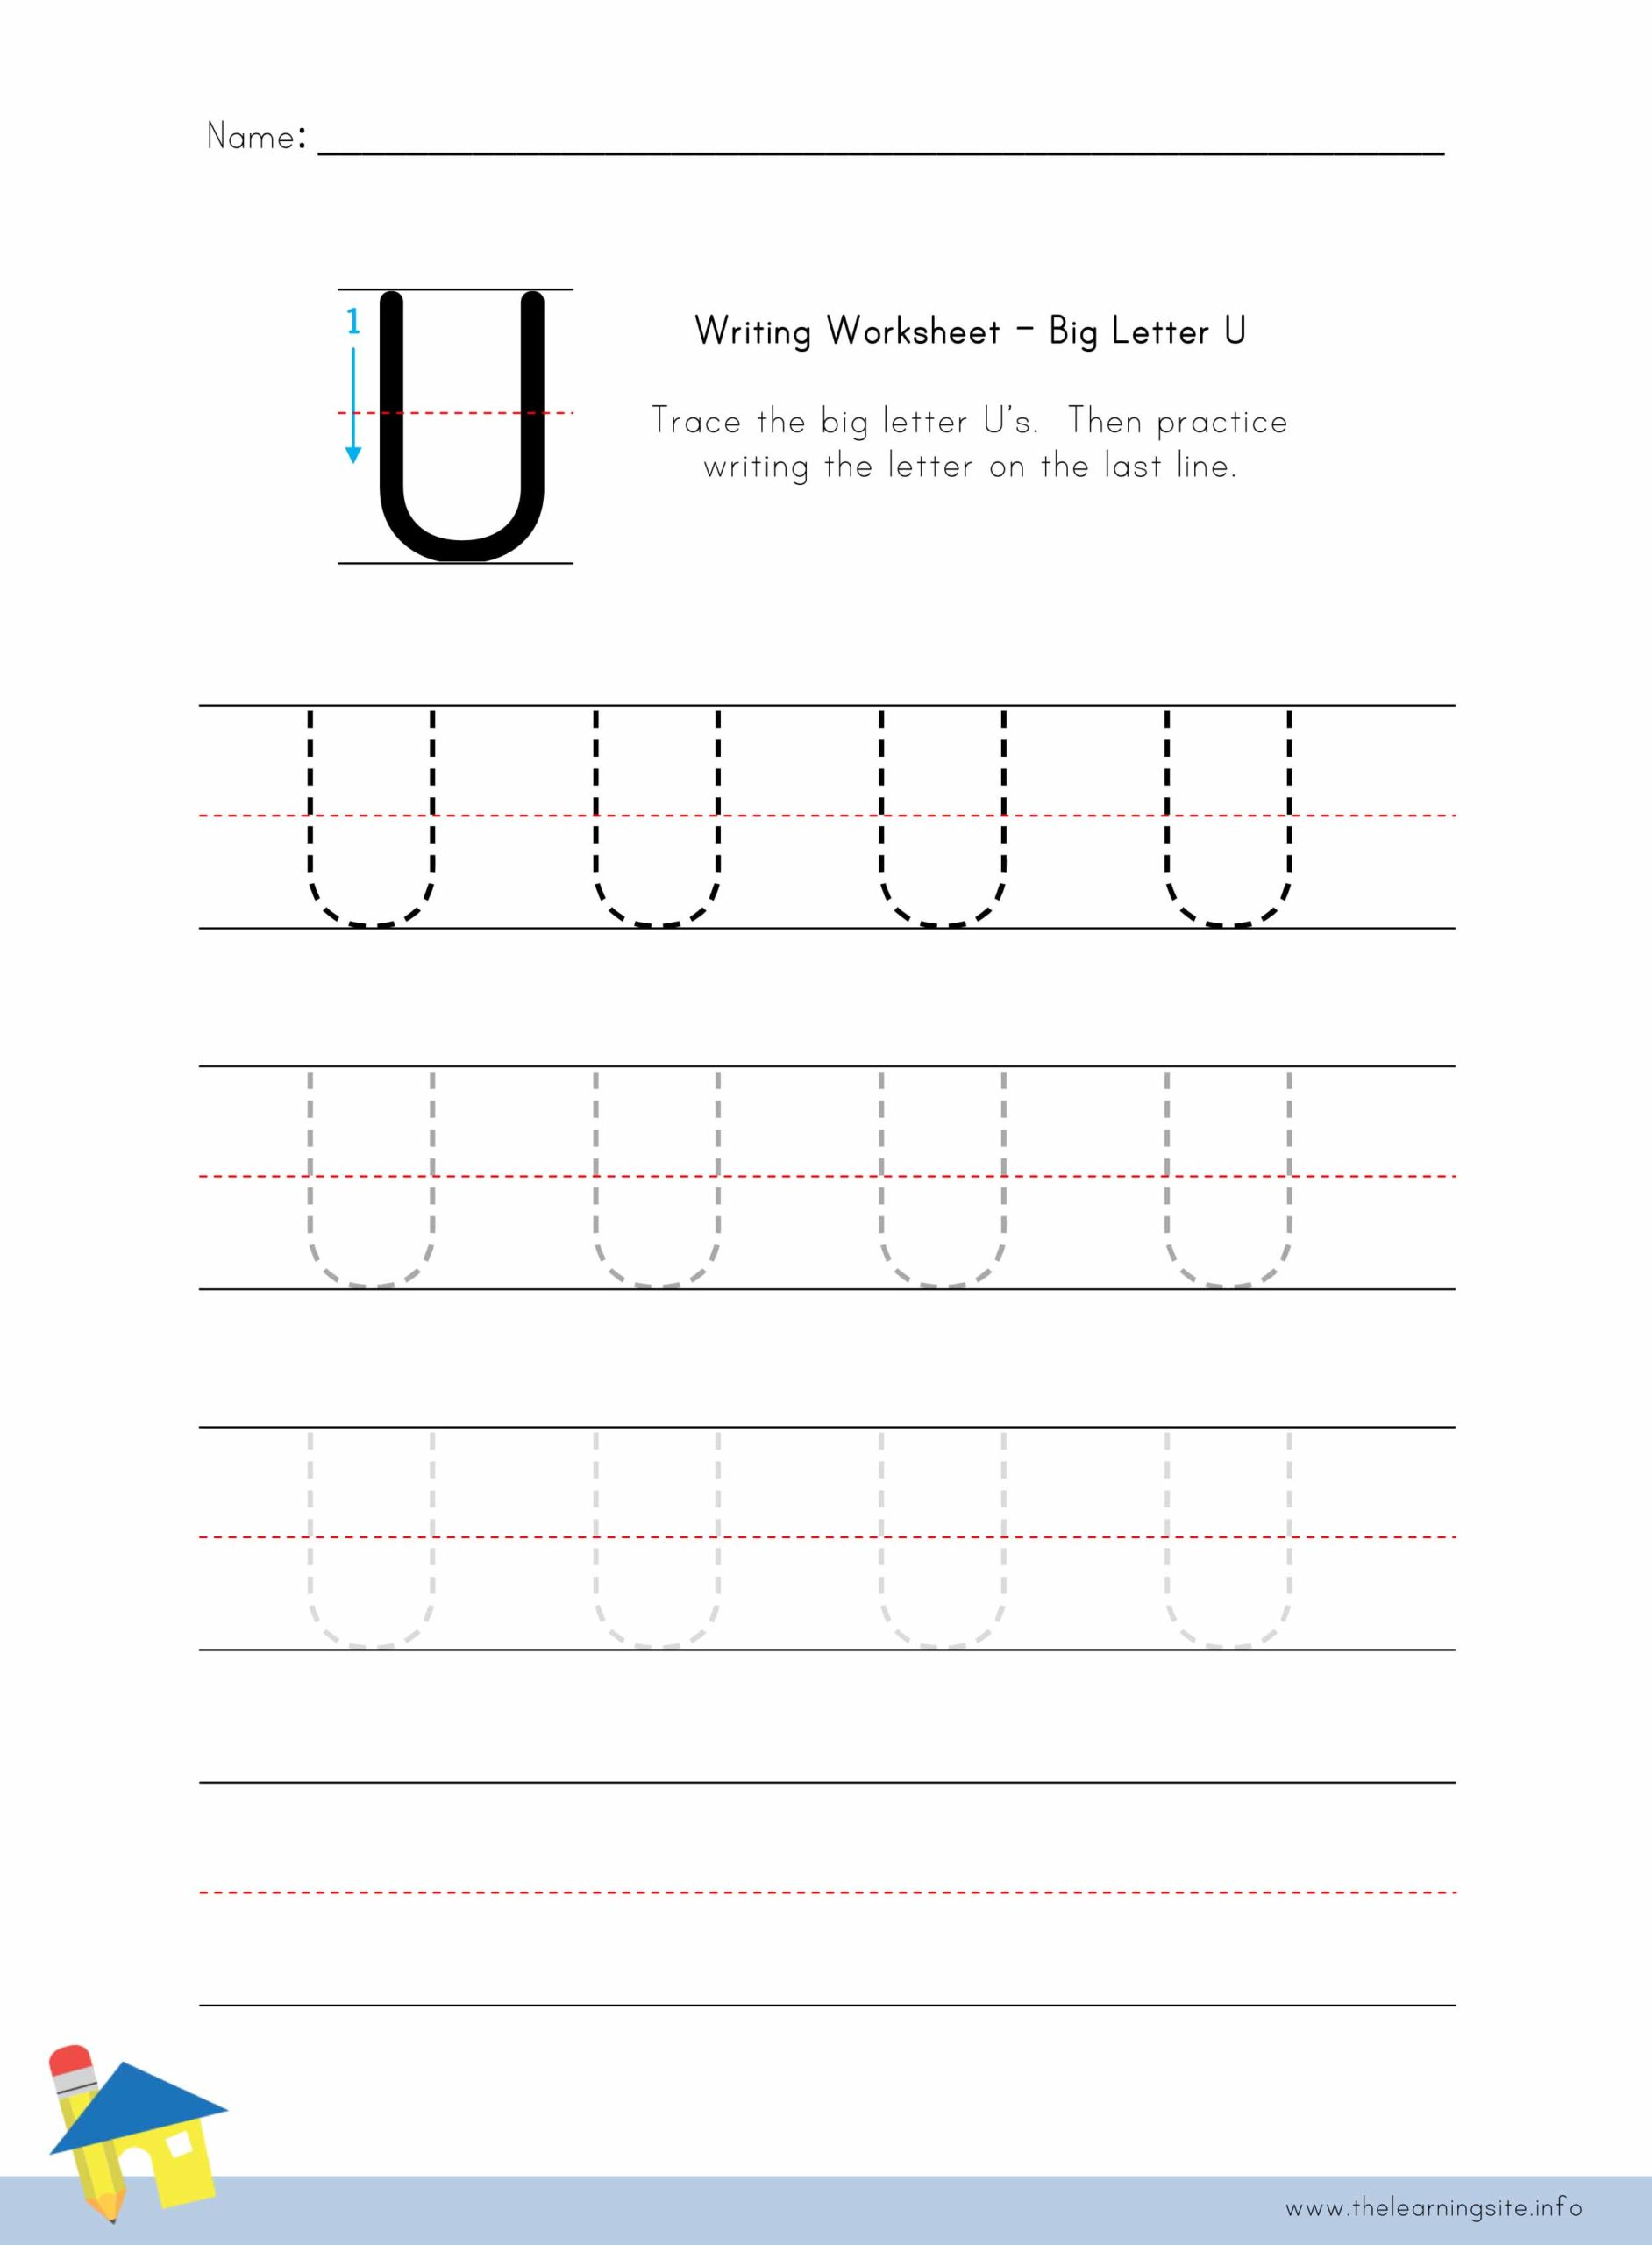 Big Letter U Writing Worksheet The Learning Site